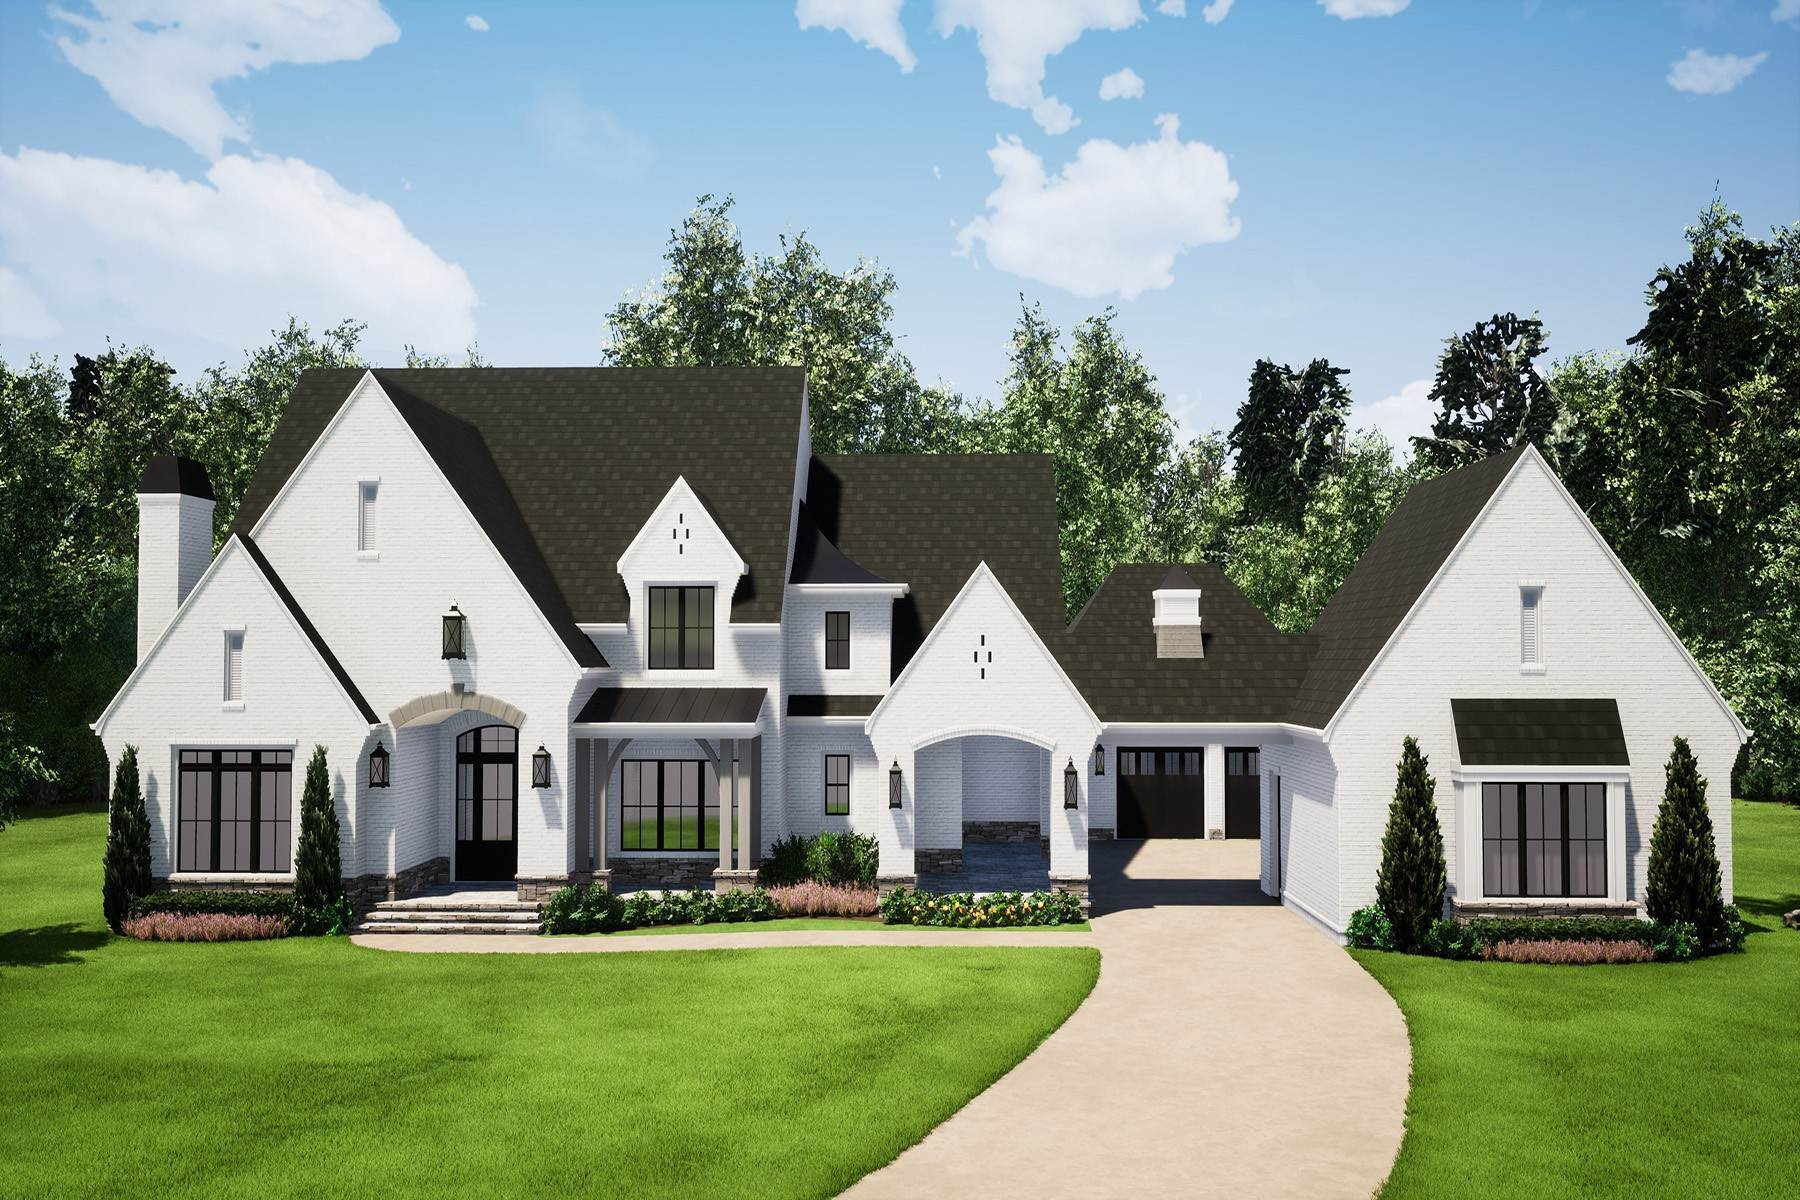 Single Family Homes for Active at Spectacular New Construction Overlooking Double Fairway 15994 Manor Club Drive Milton, Georgia 30004 United States